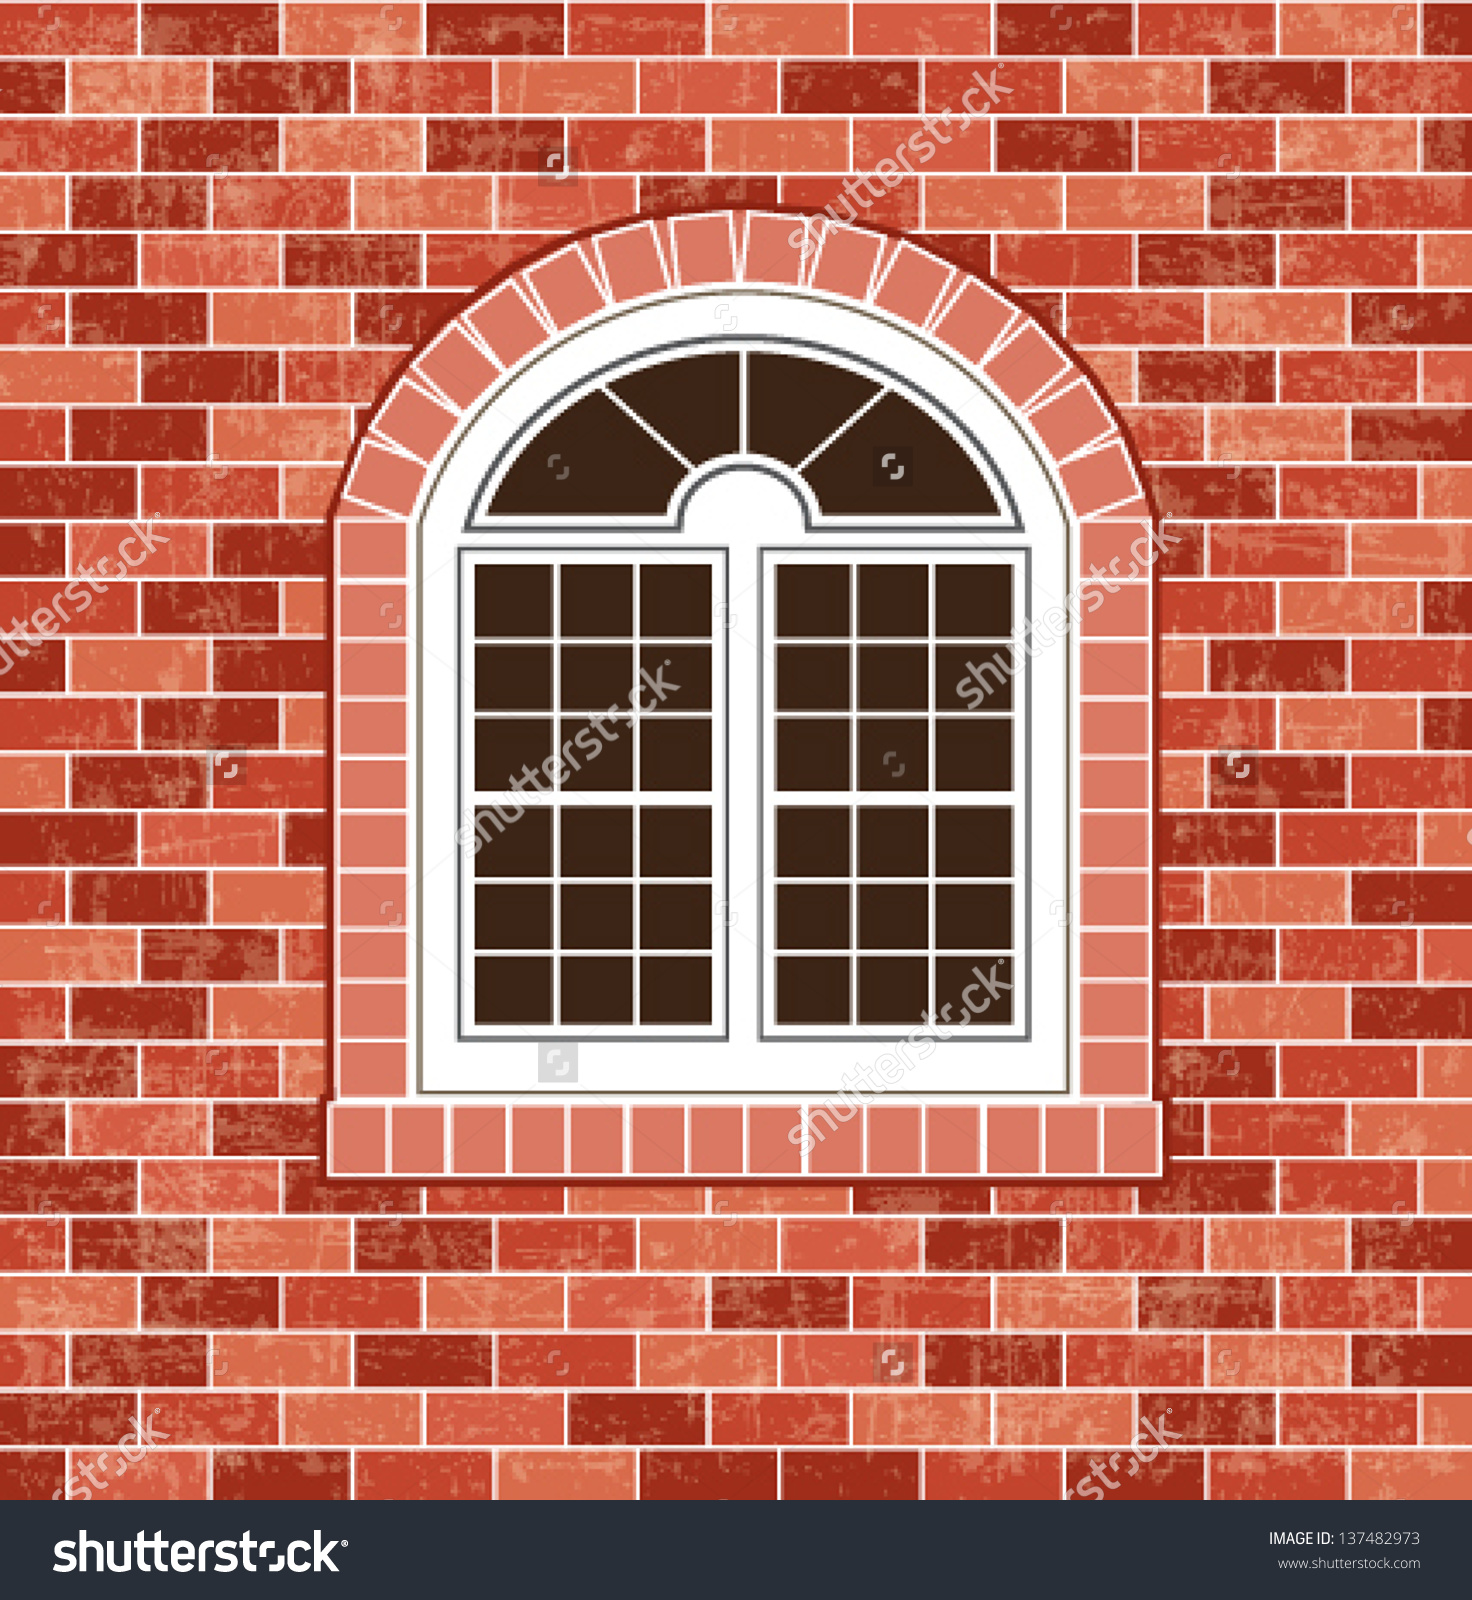 Window On Brick Wall Background Stock Vector 137482973.